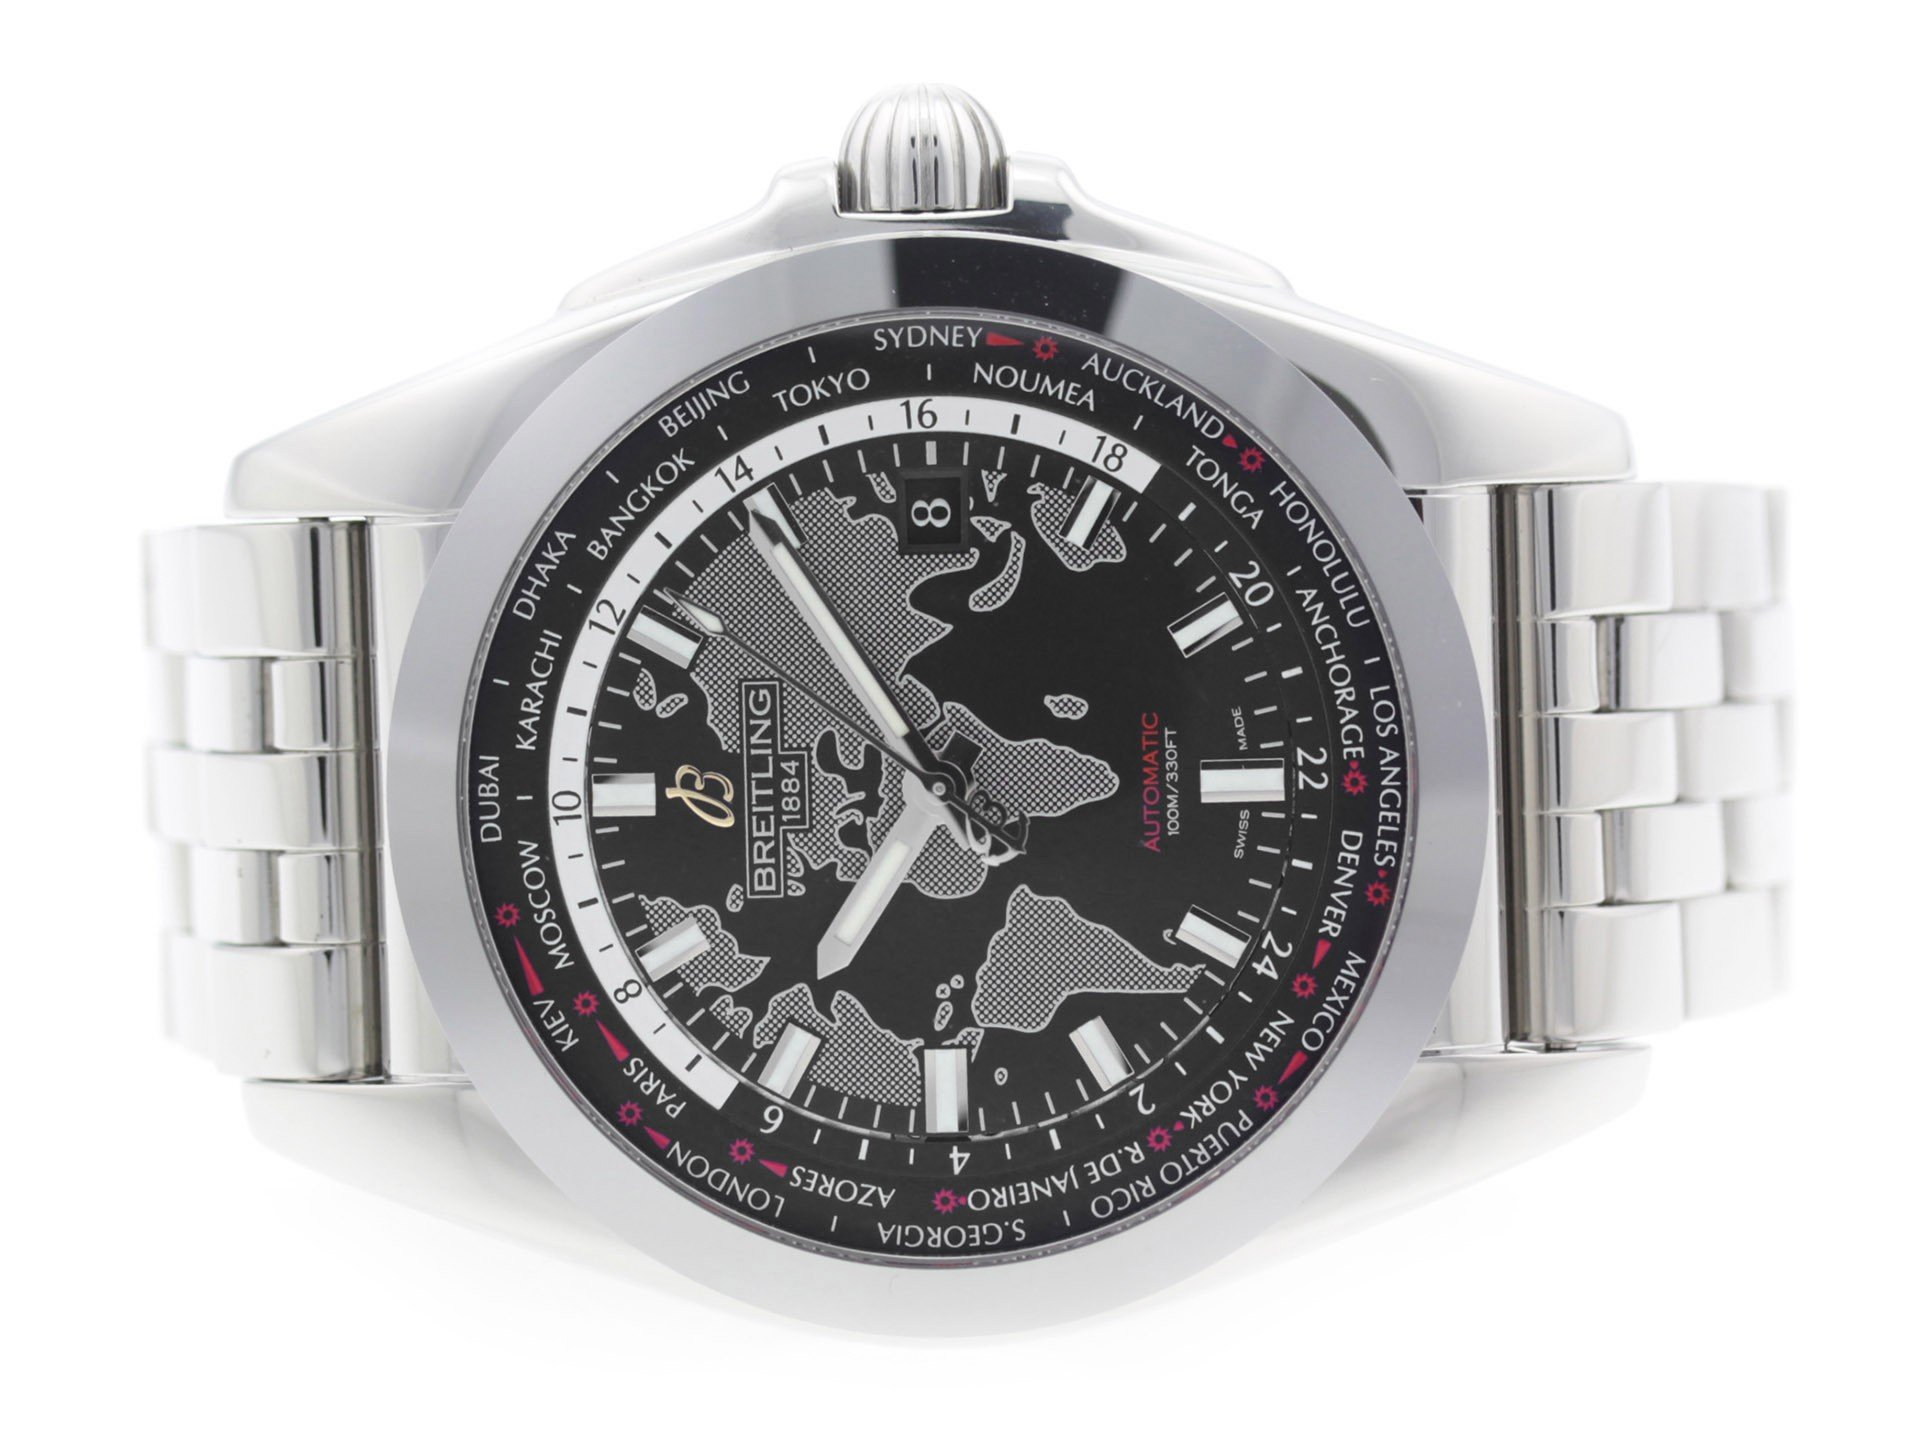 Breitling Galactic swiss-automatic mens Watch WB3510 (Certified Pre-owned) by Breitling (Image #2)